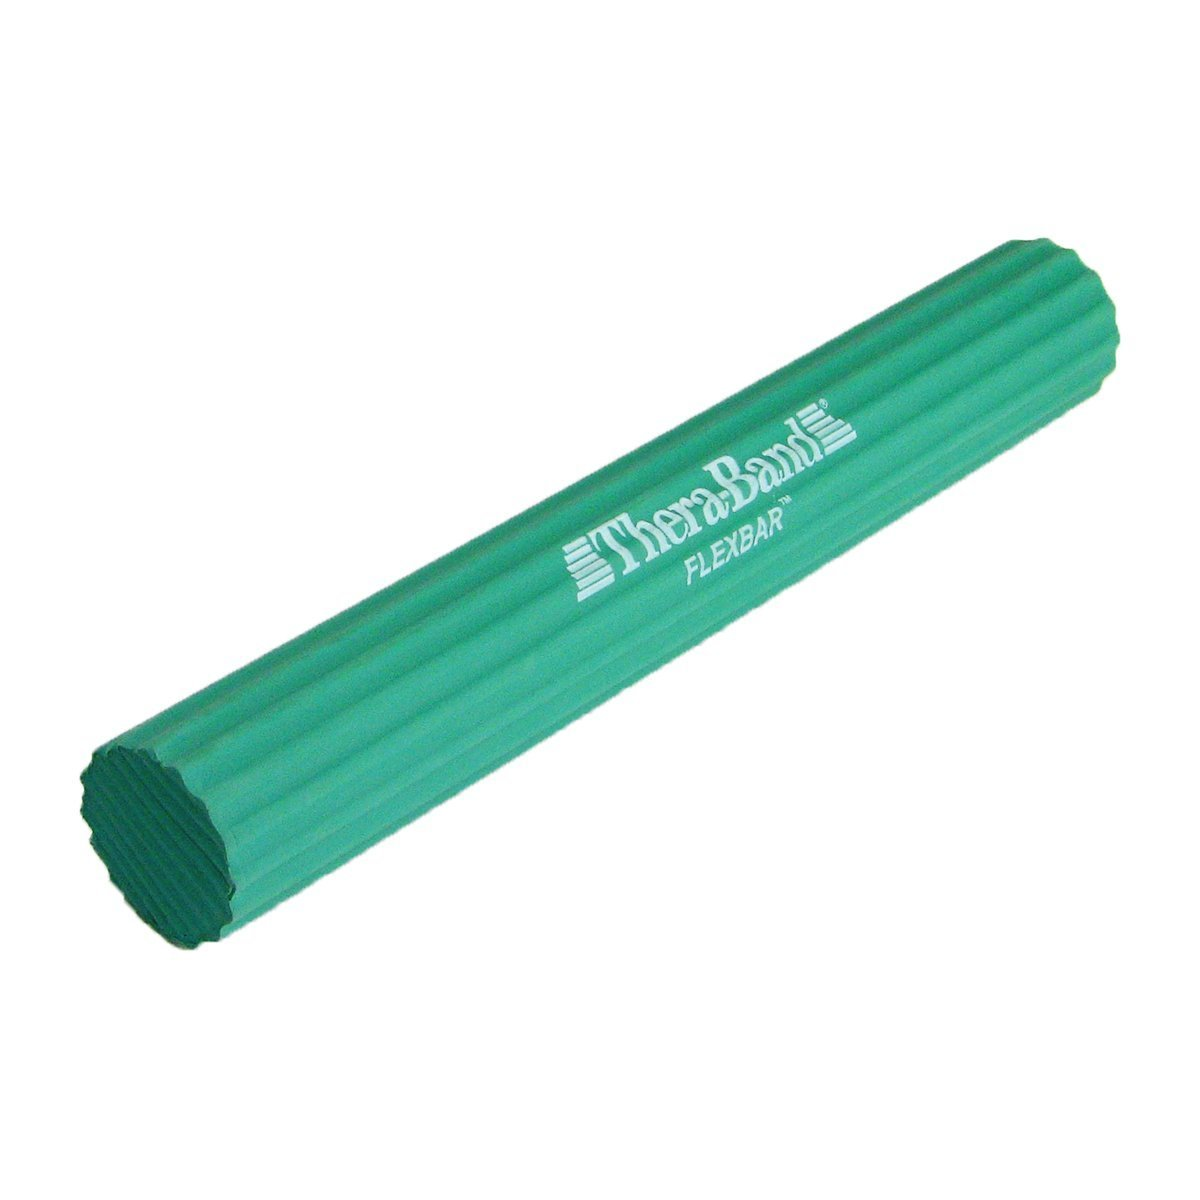 TheraBand FlexBar, Tennis Elbow Therapy Bar, Relieve Tendonitis Pain & Improve Grip Strength, Resistance Bar for Golfers Elbow & Tendinitis, Green, Medium, Intermediate by TheraBand (Image #1)